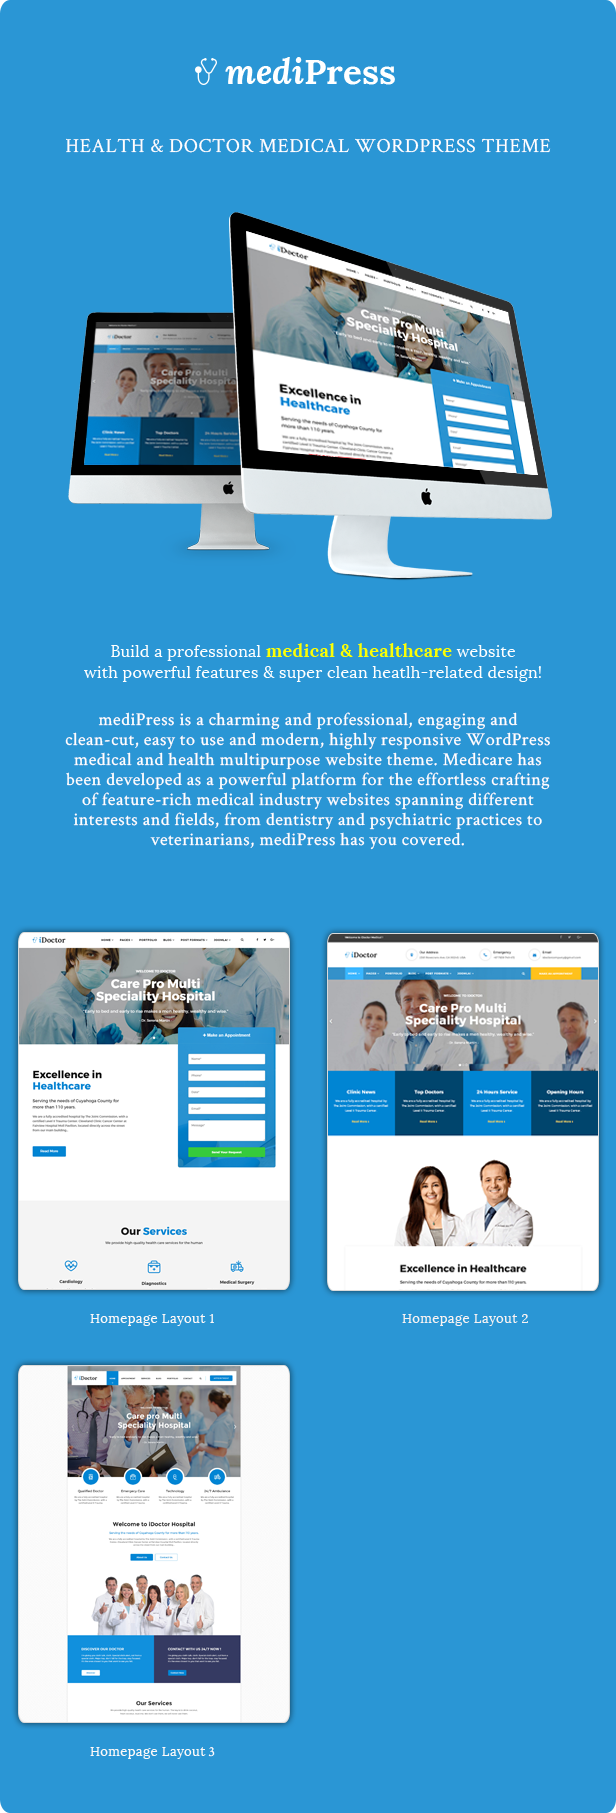 mediPress - Health and Doctor Medical WordPress Theme - 2